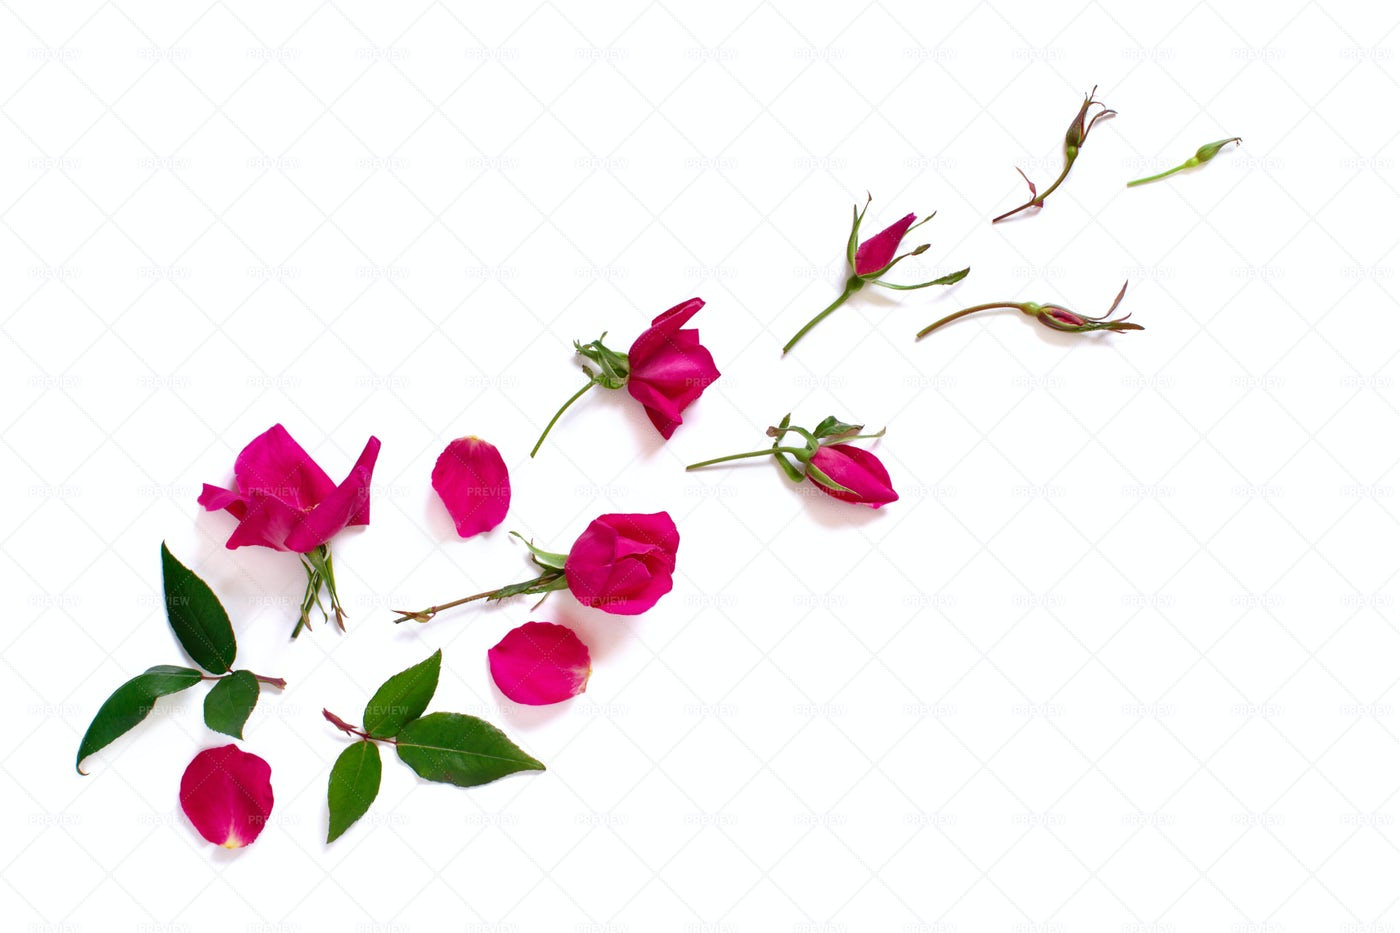 Spring Composition With Pink Roses: Stock Photos